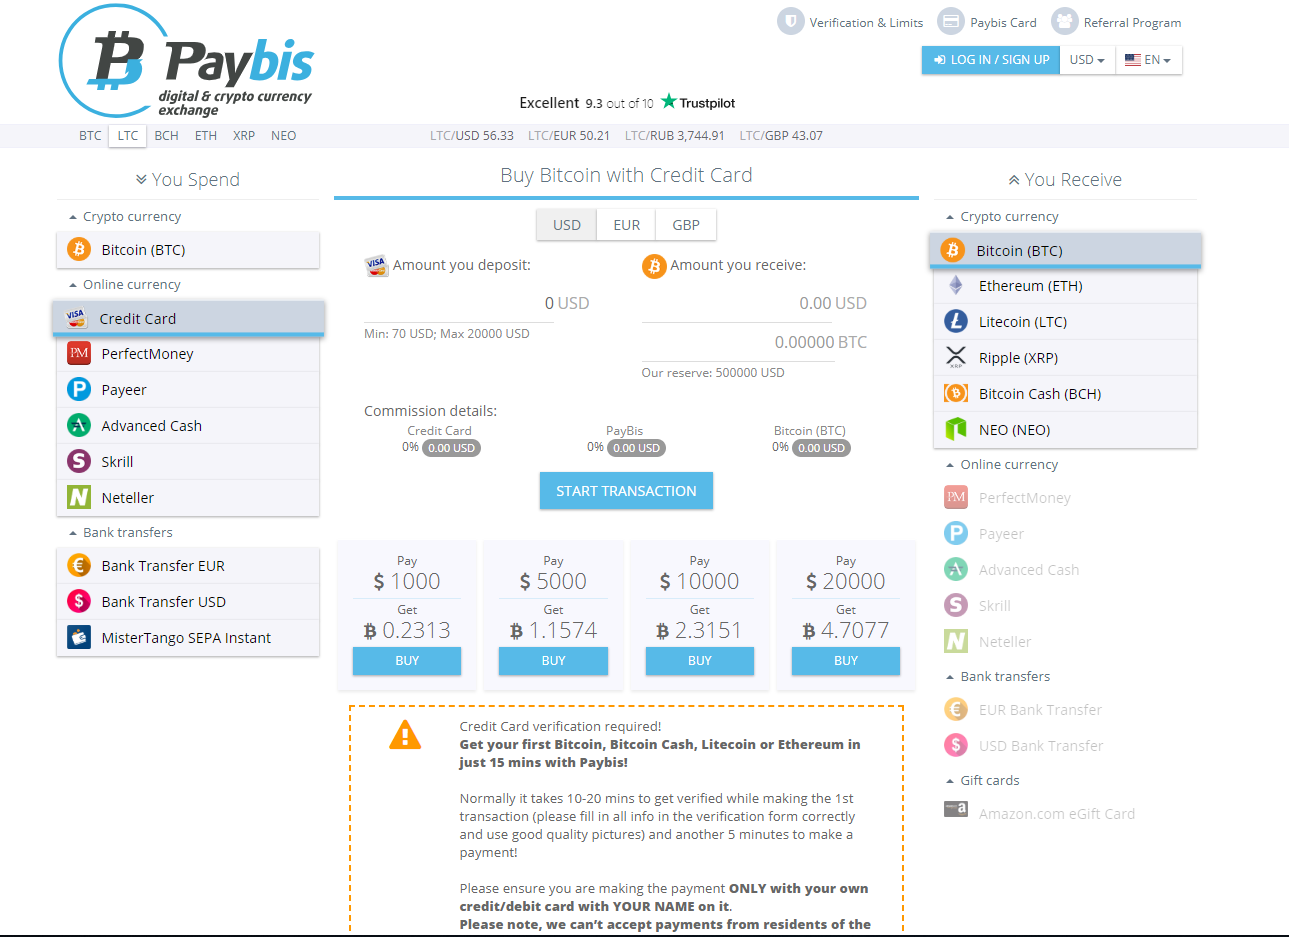 Paybis Purchase Interface